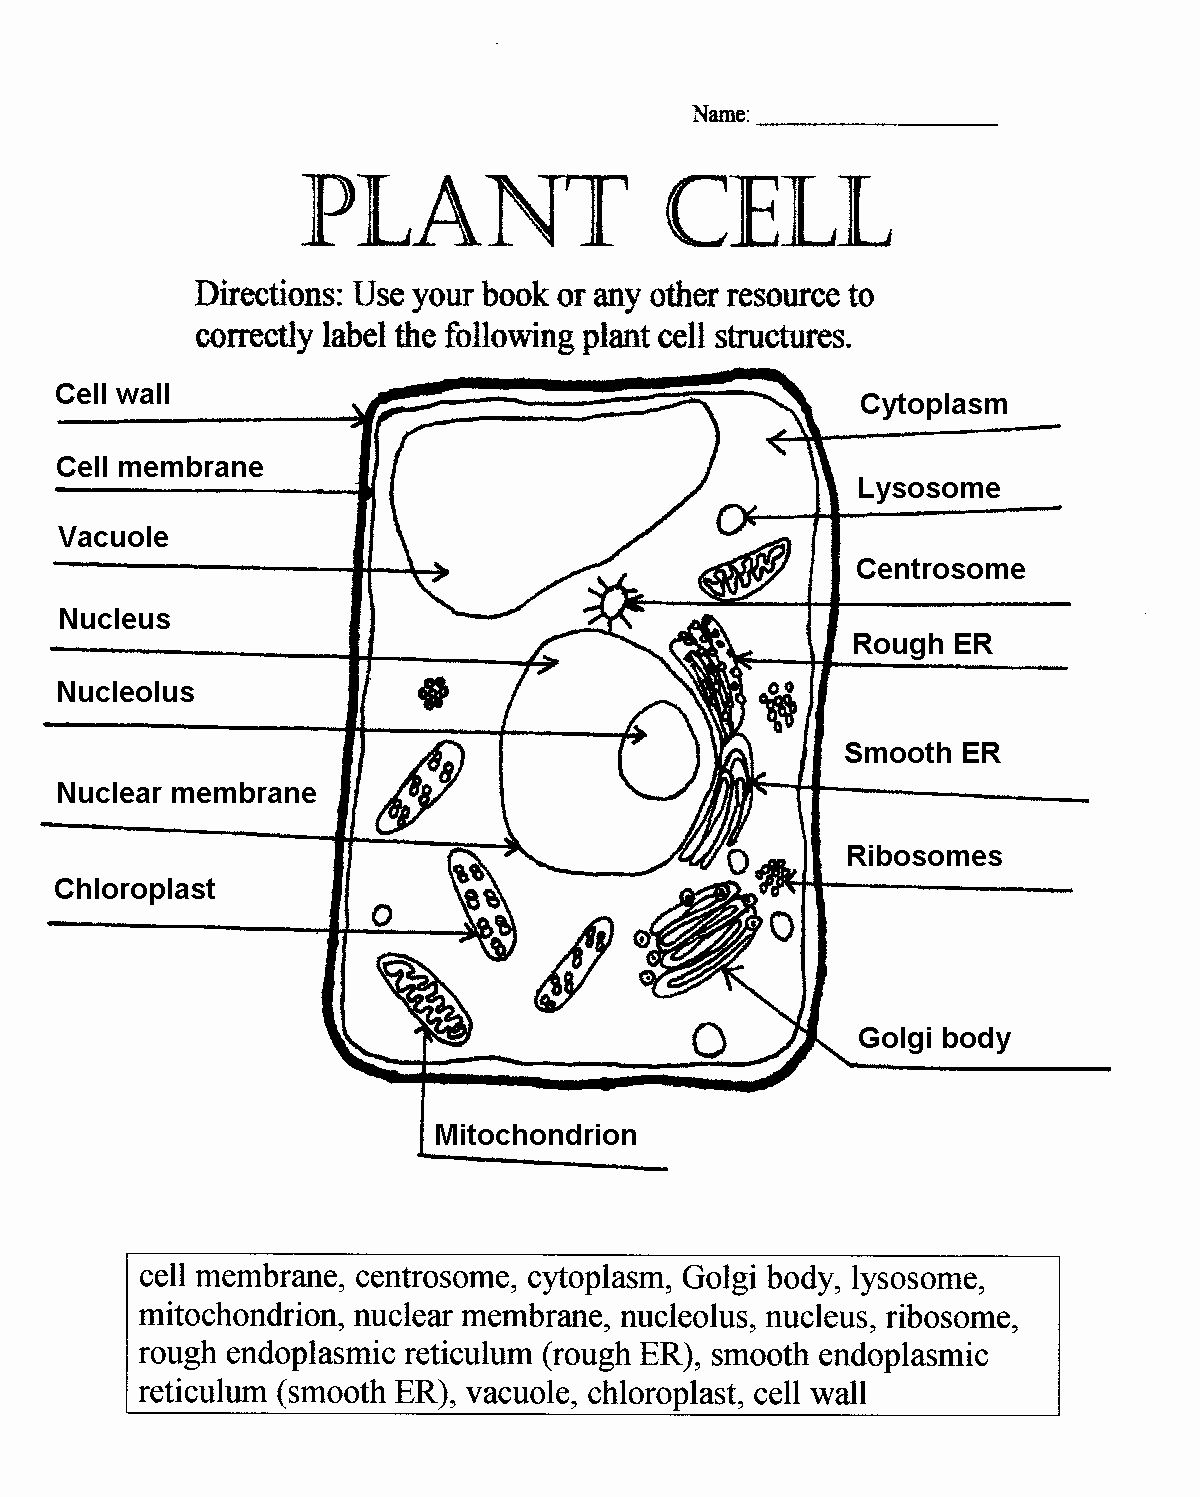 Animal And Plant Cells Worksheet Inspirational 1000 Images About Plant Animal Cells On Pinterest Ch Cells Worksheet Plant Cell Diagram Plant And Animal Cells